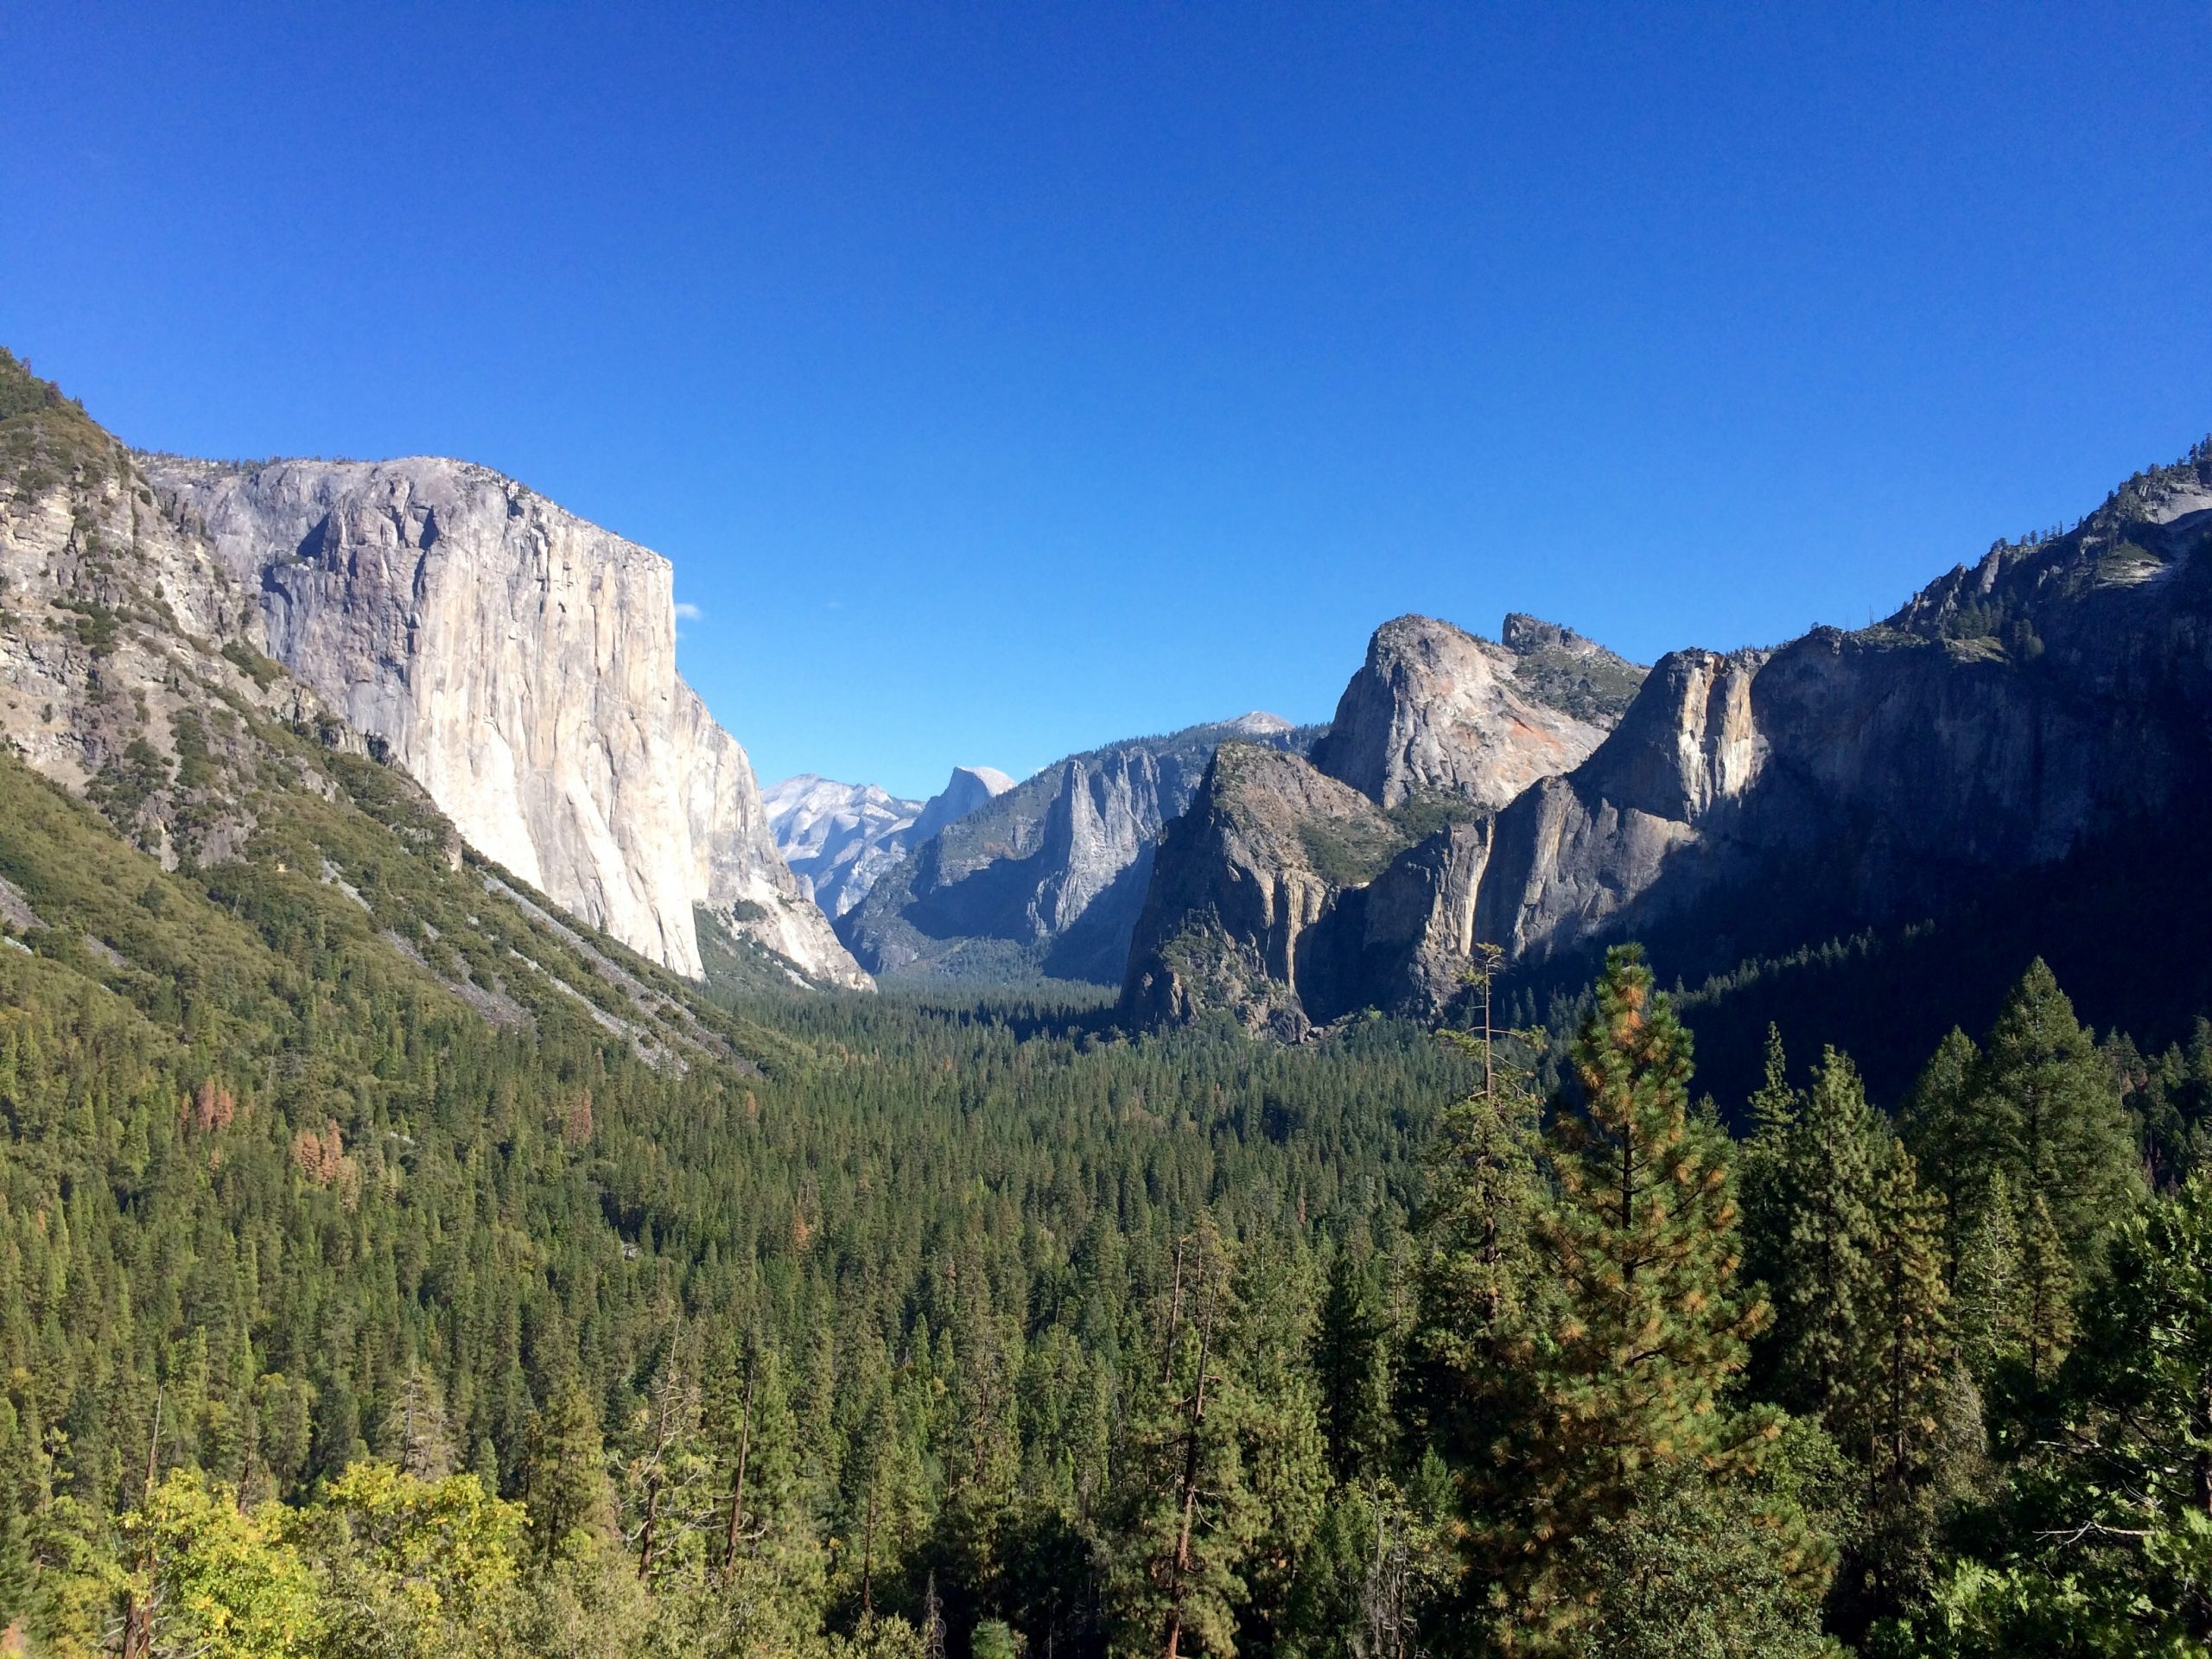 Yosemite National Park featuring El Capitan on the left